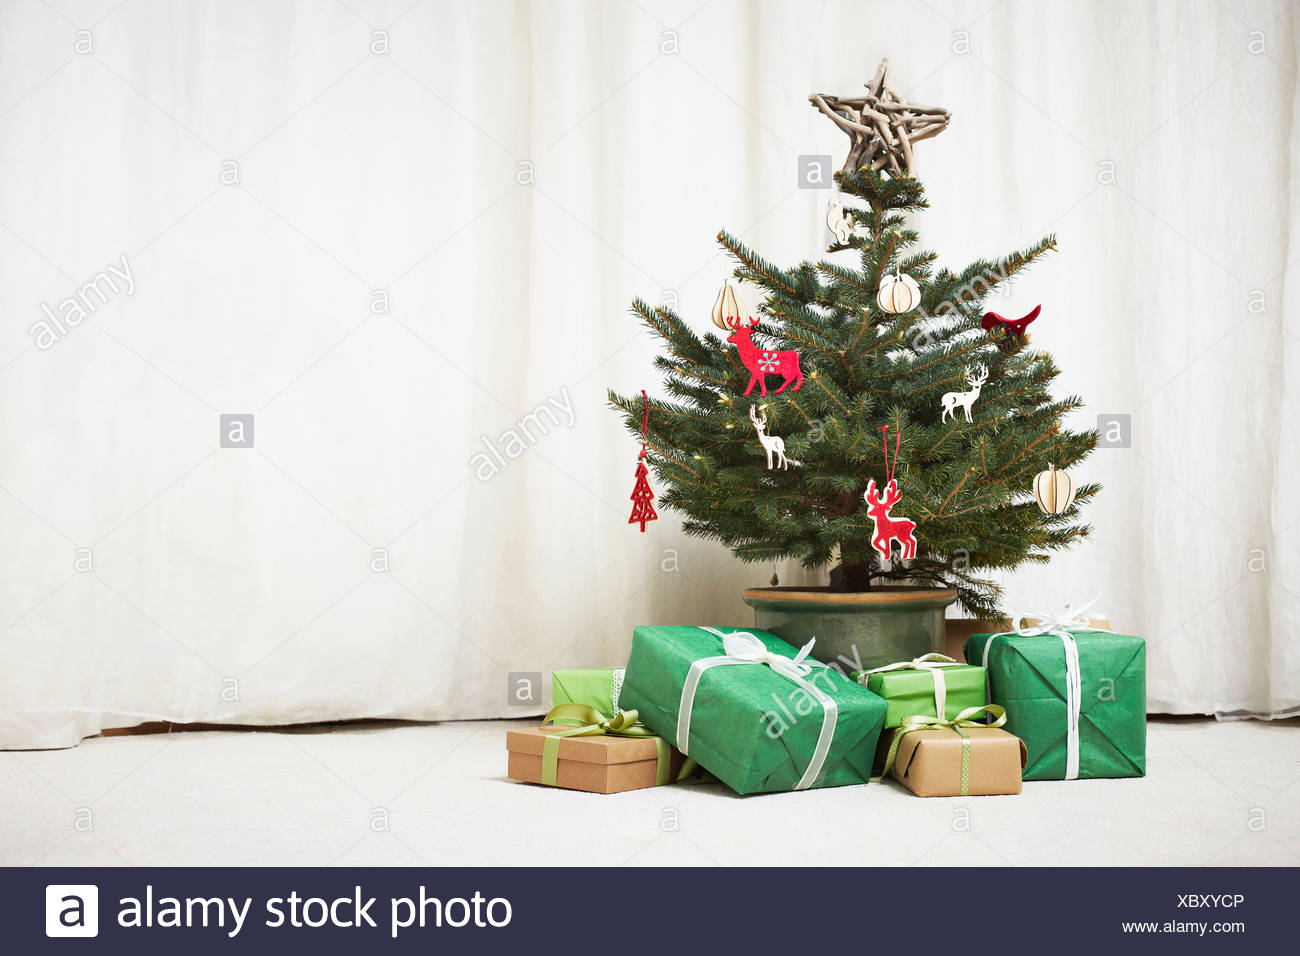 Decorated Christmas tree with gifts Stock Photo